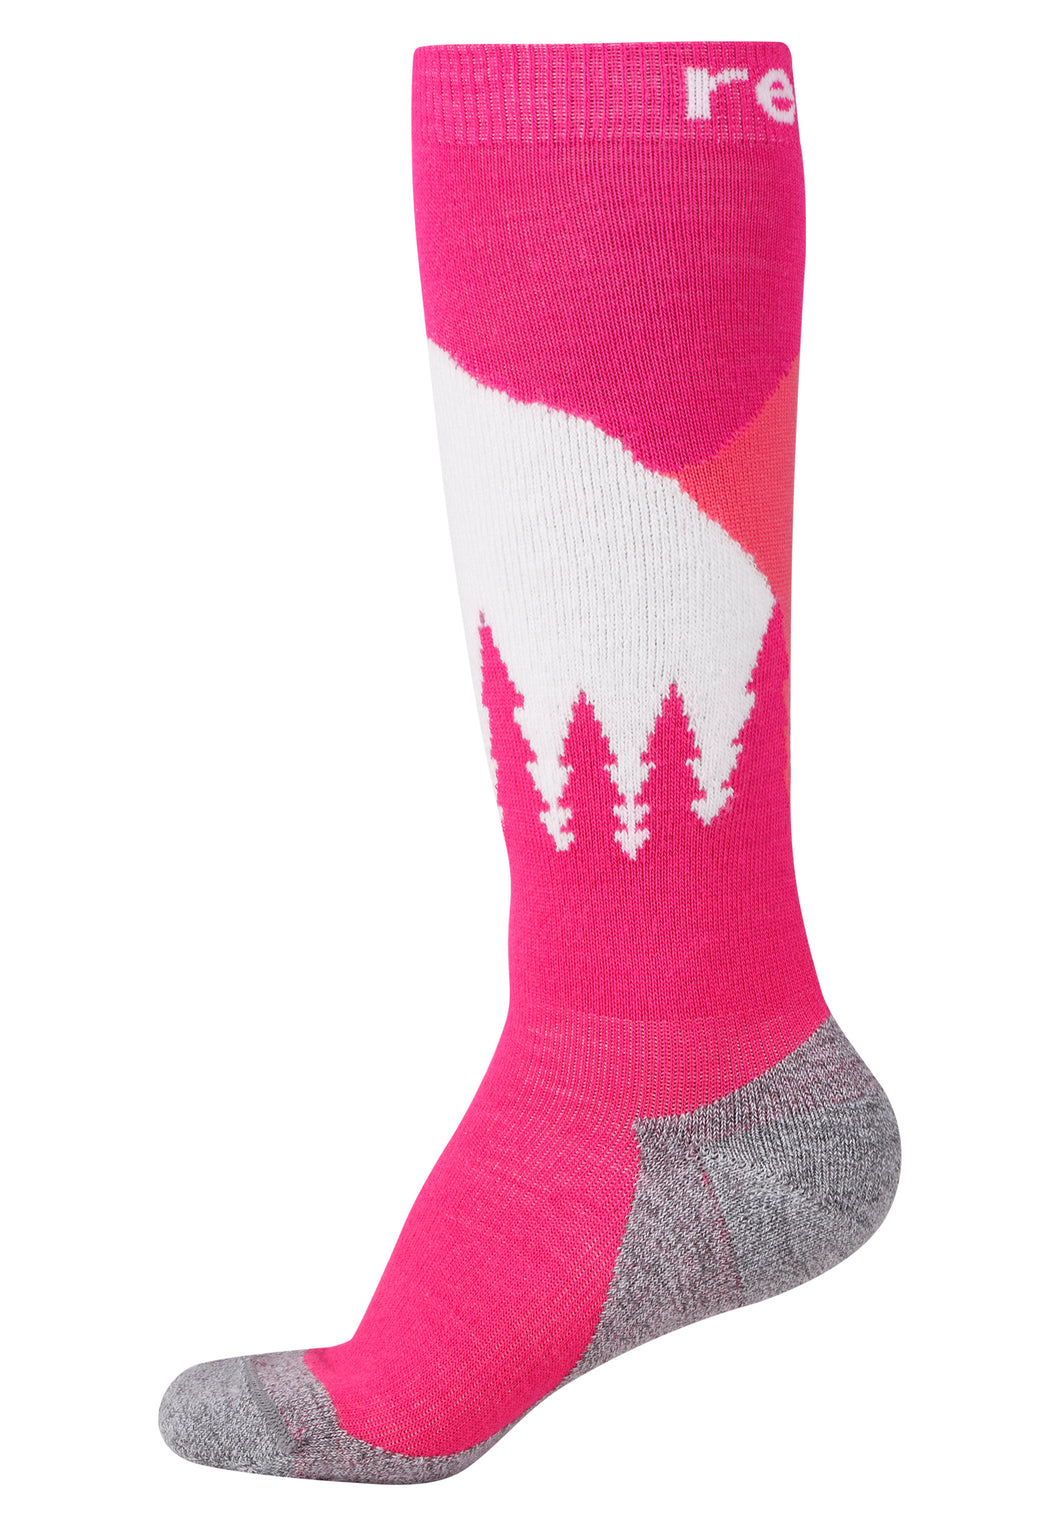 Reima Kinder Stricksocken Ski Day Rasperry Pink